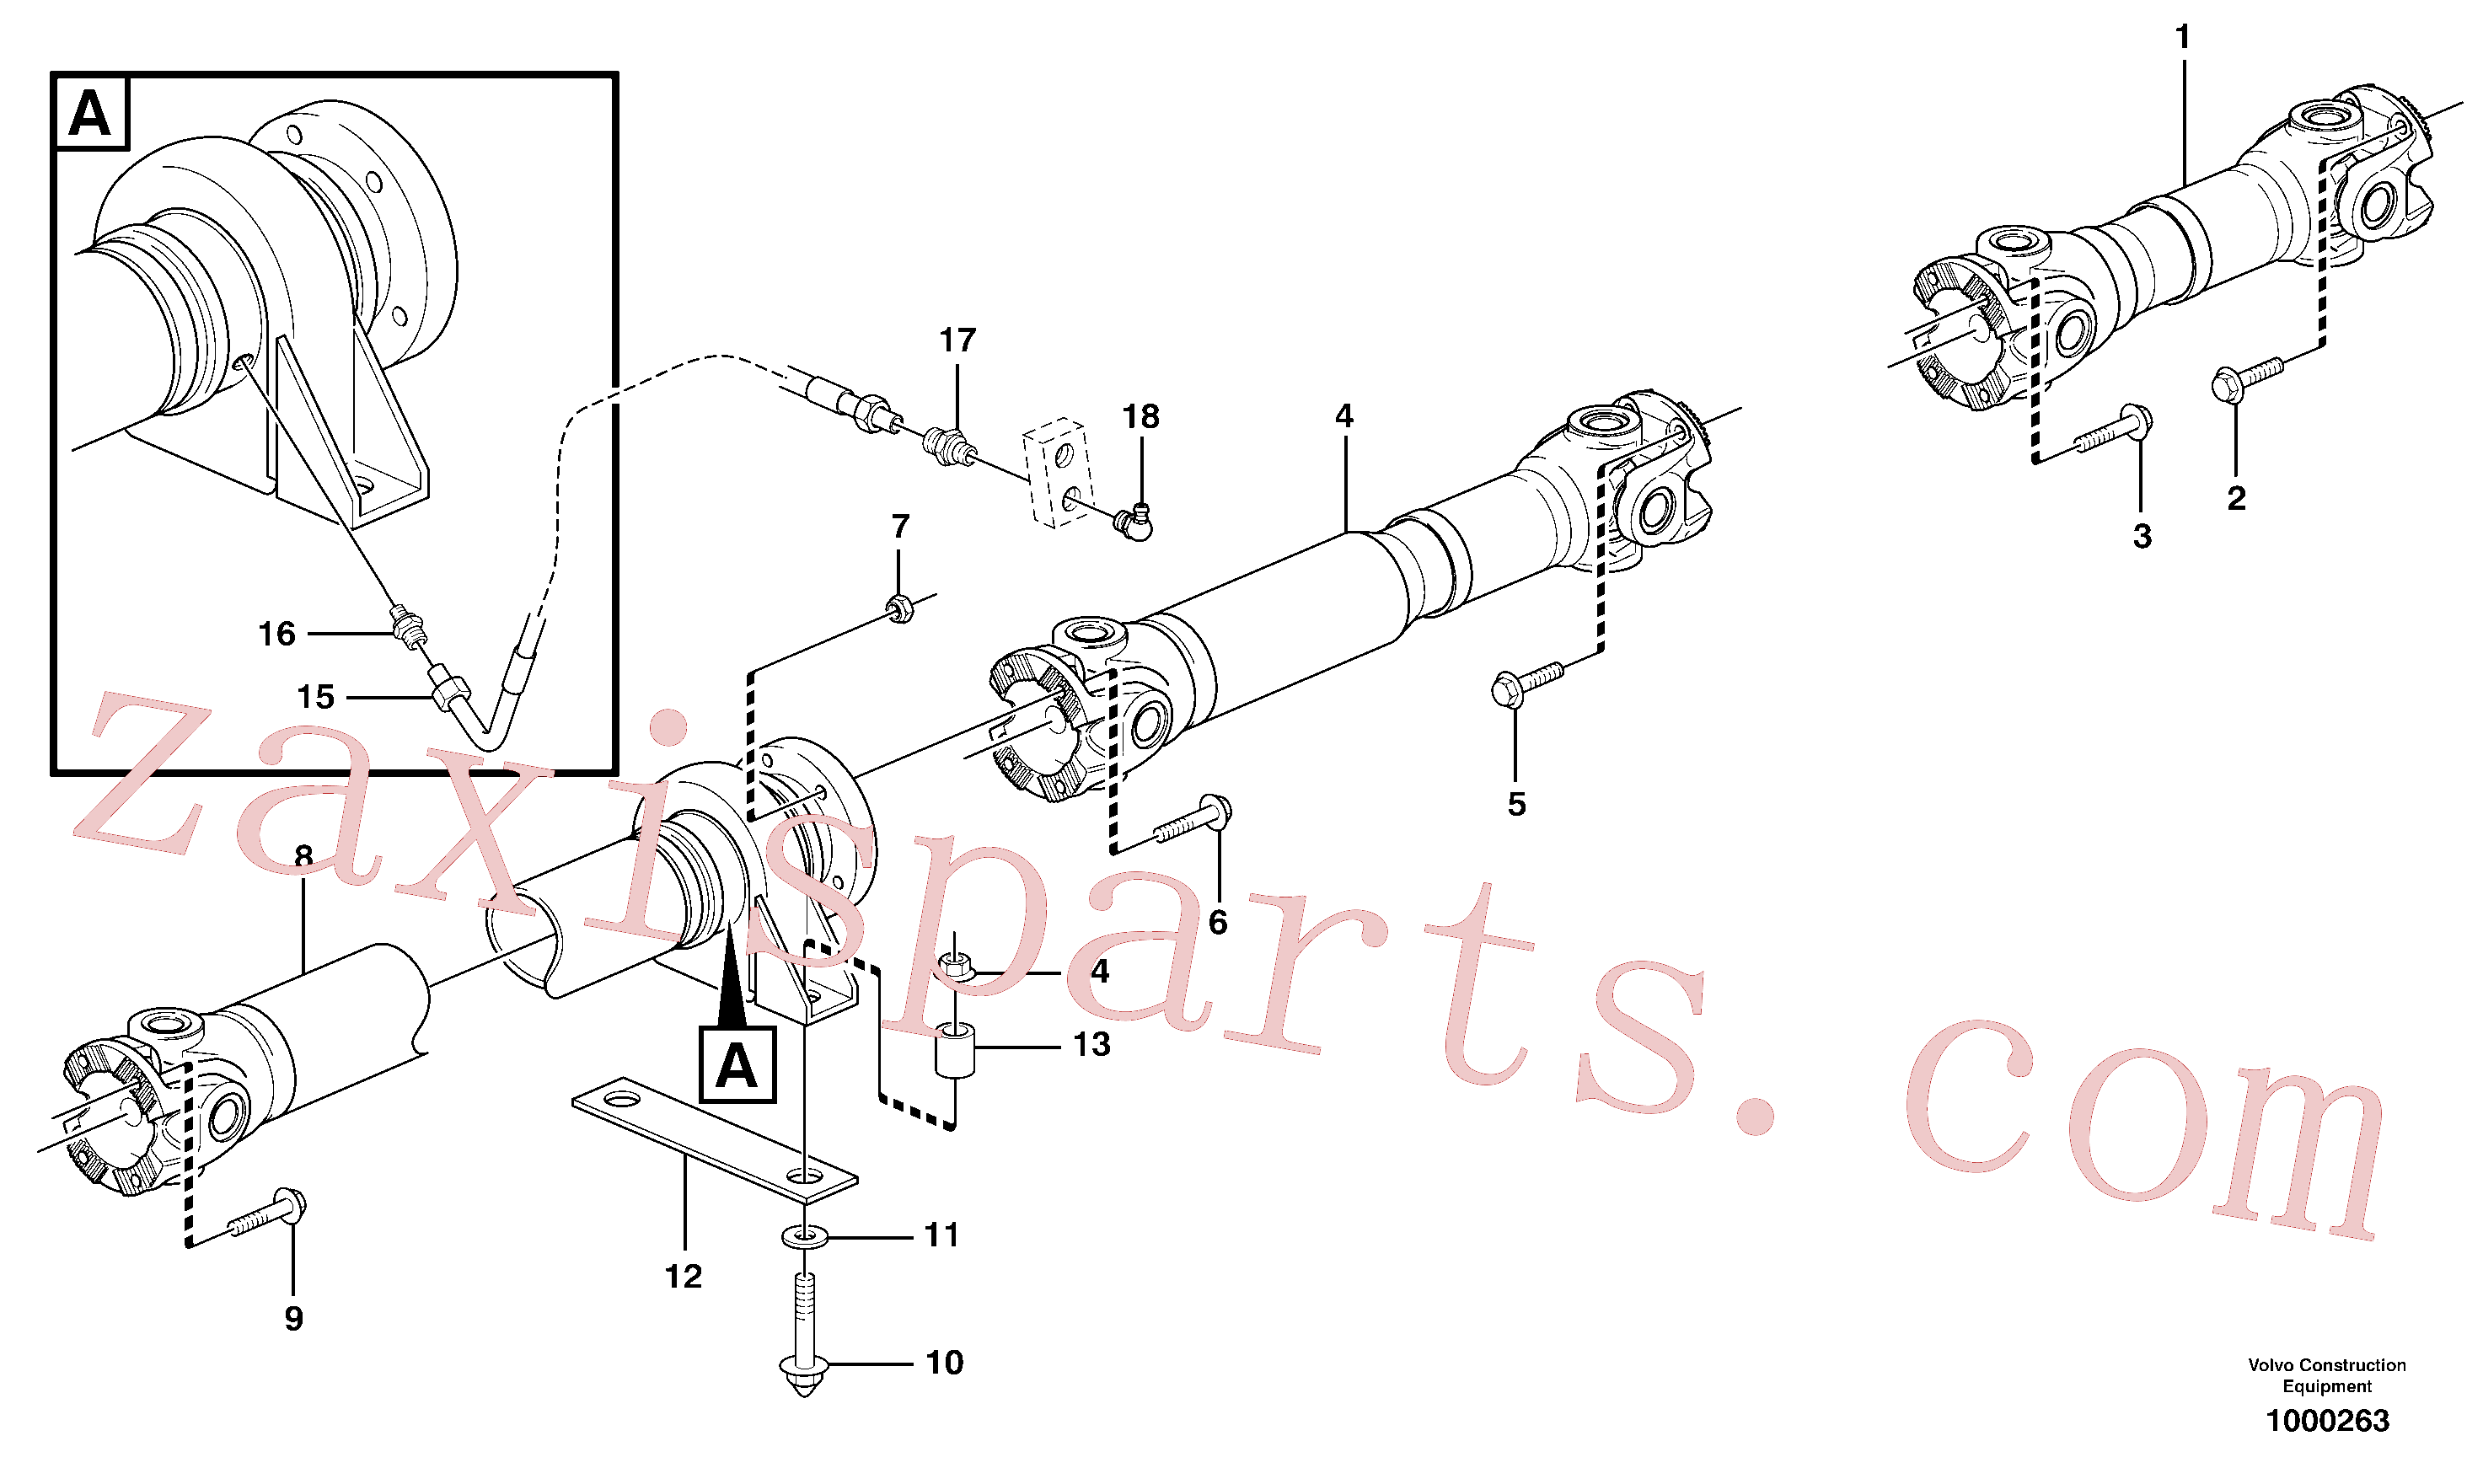 VOE13966366 for Volvo Propeller shafts with fitting parts(1000263 assembly)